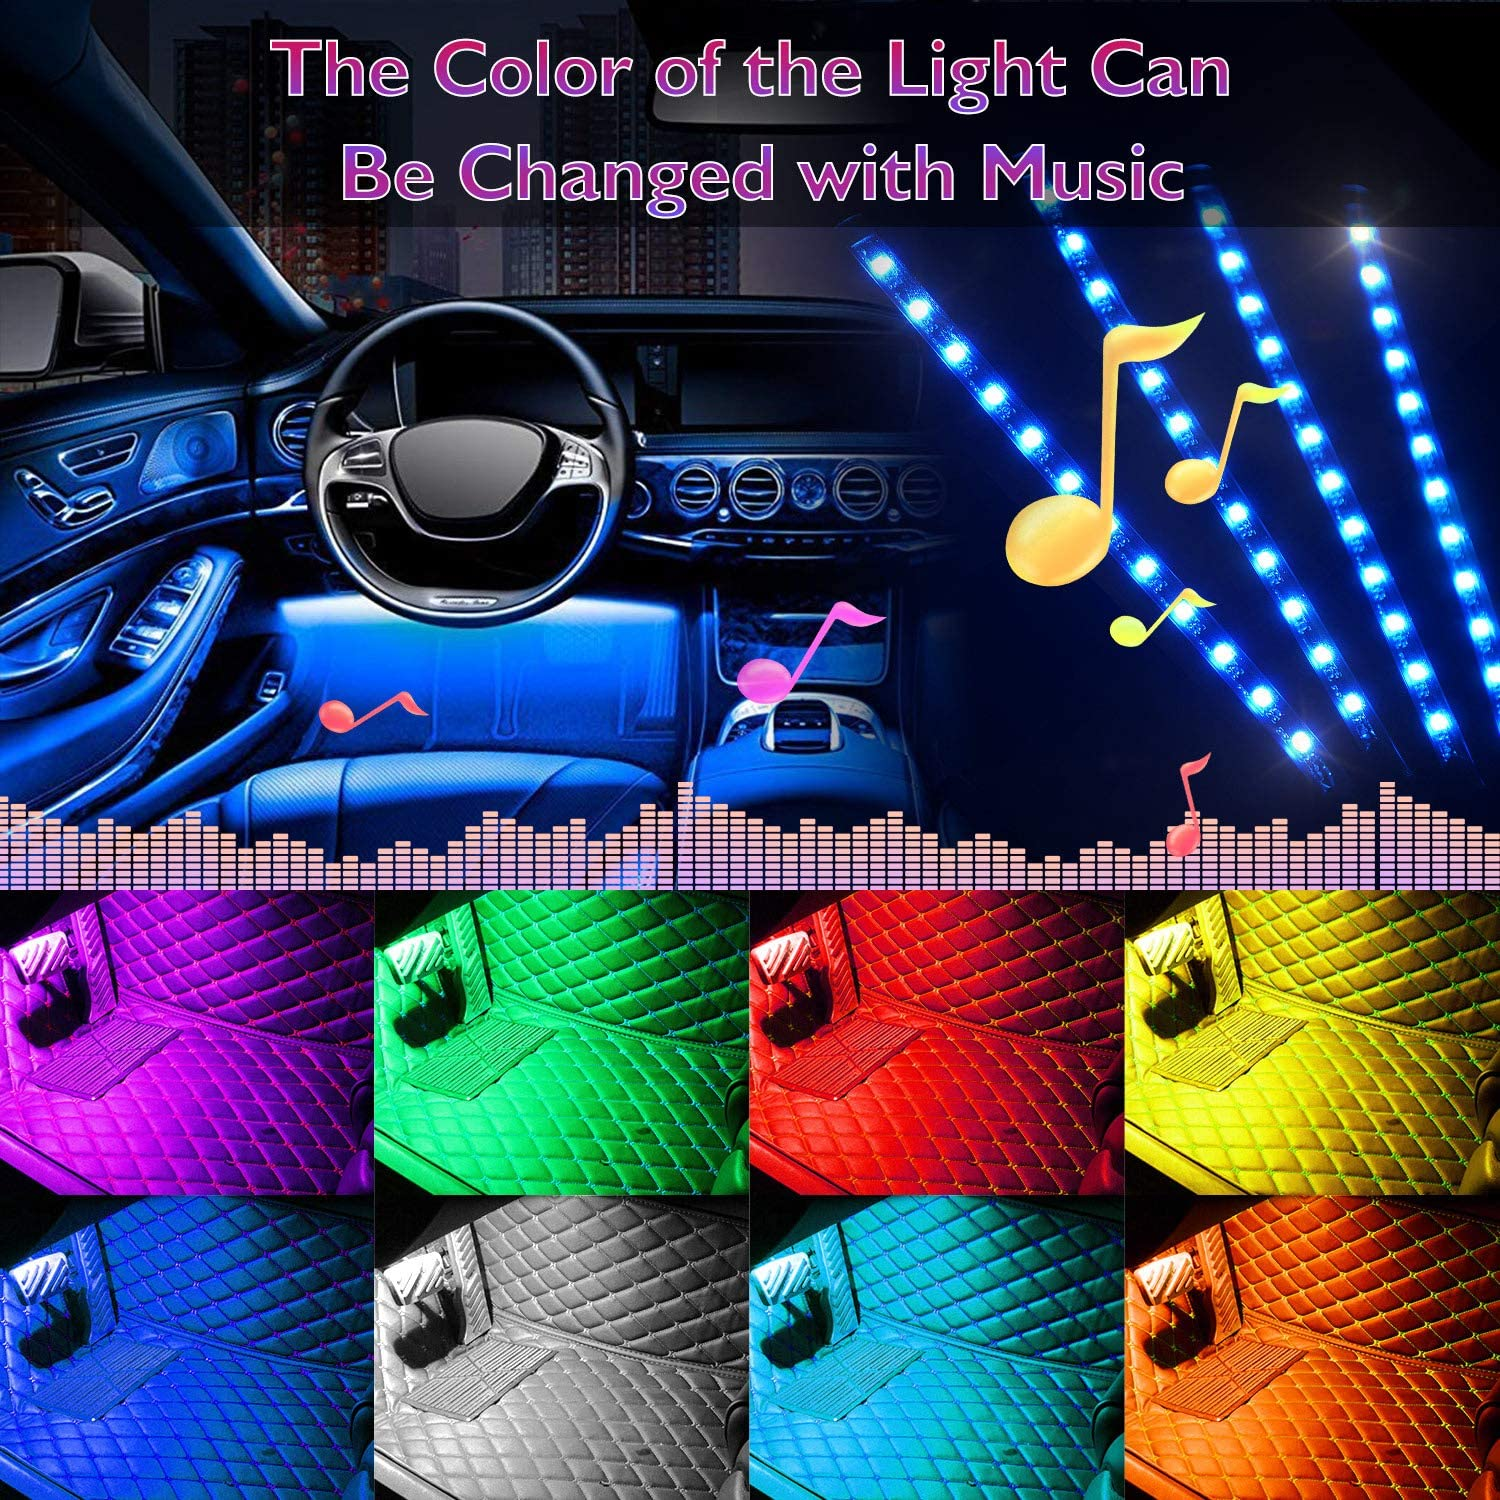 DC 12V Car Charger Included 4 Pack 48 Car LED Lights Interior Car Lights MultiColor Music Car Lights Interior LED Under dash Lighting Kit with Sound Active Function and Remote Control